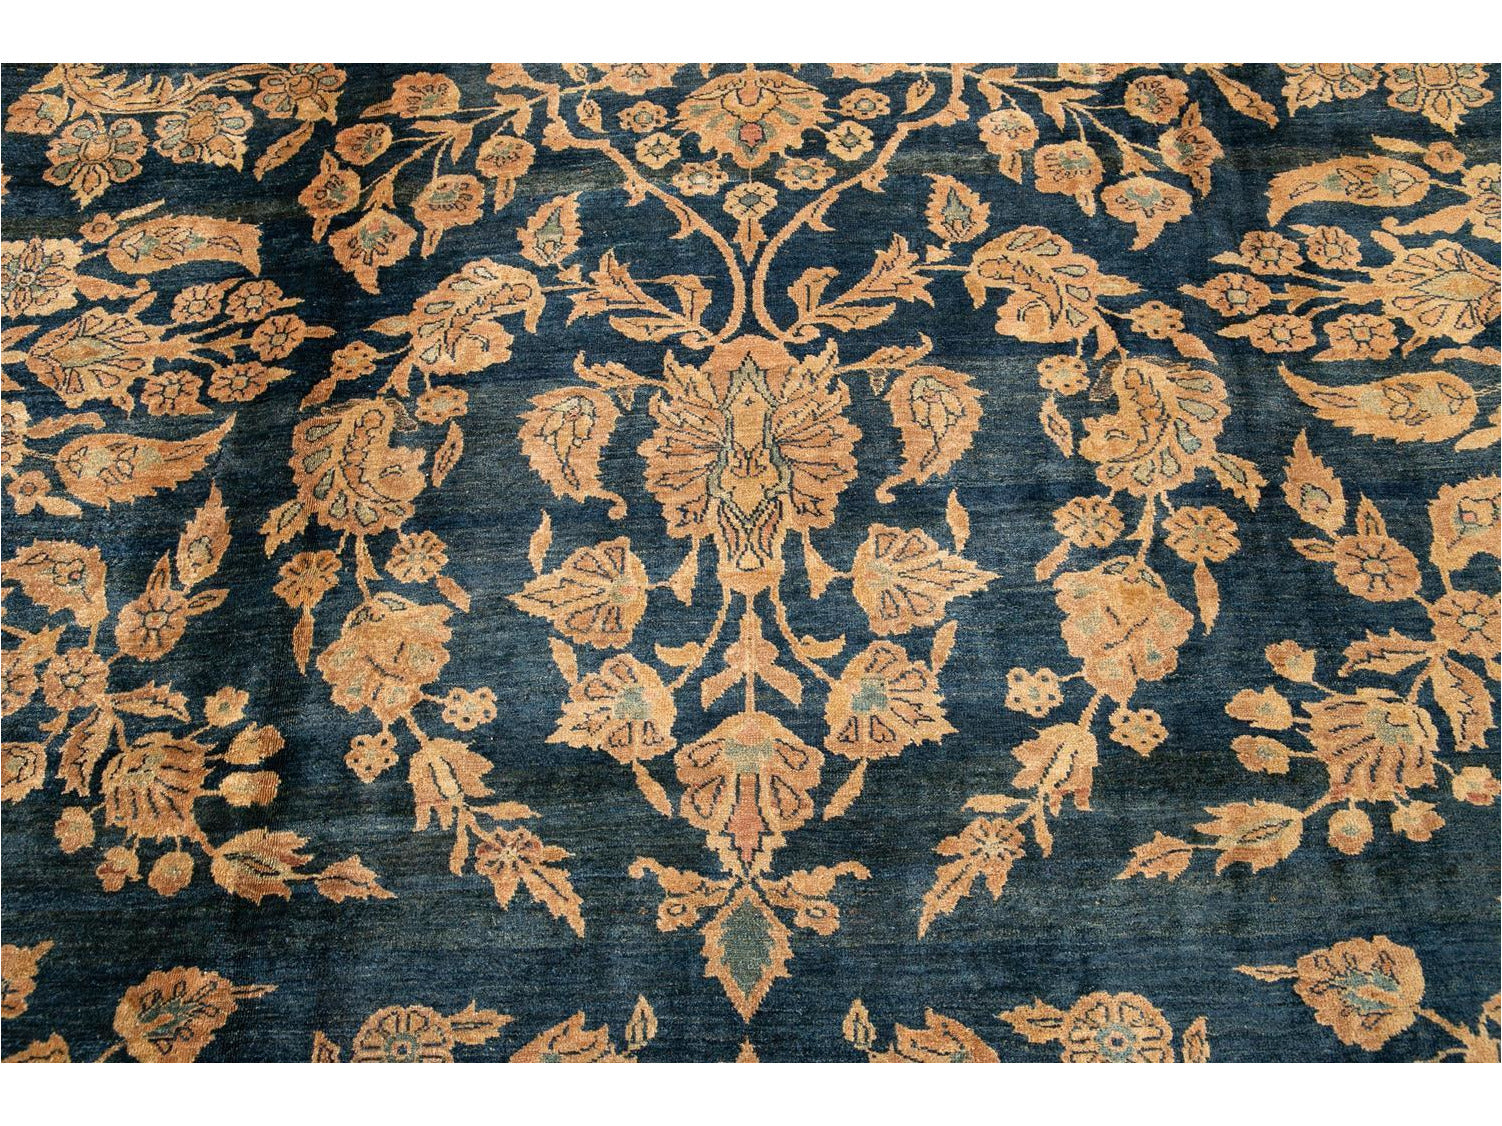 Early 20th Century Antique Sarouk Rug 10 X 17